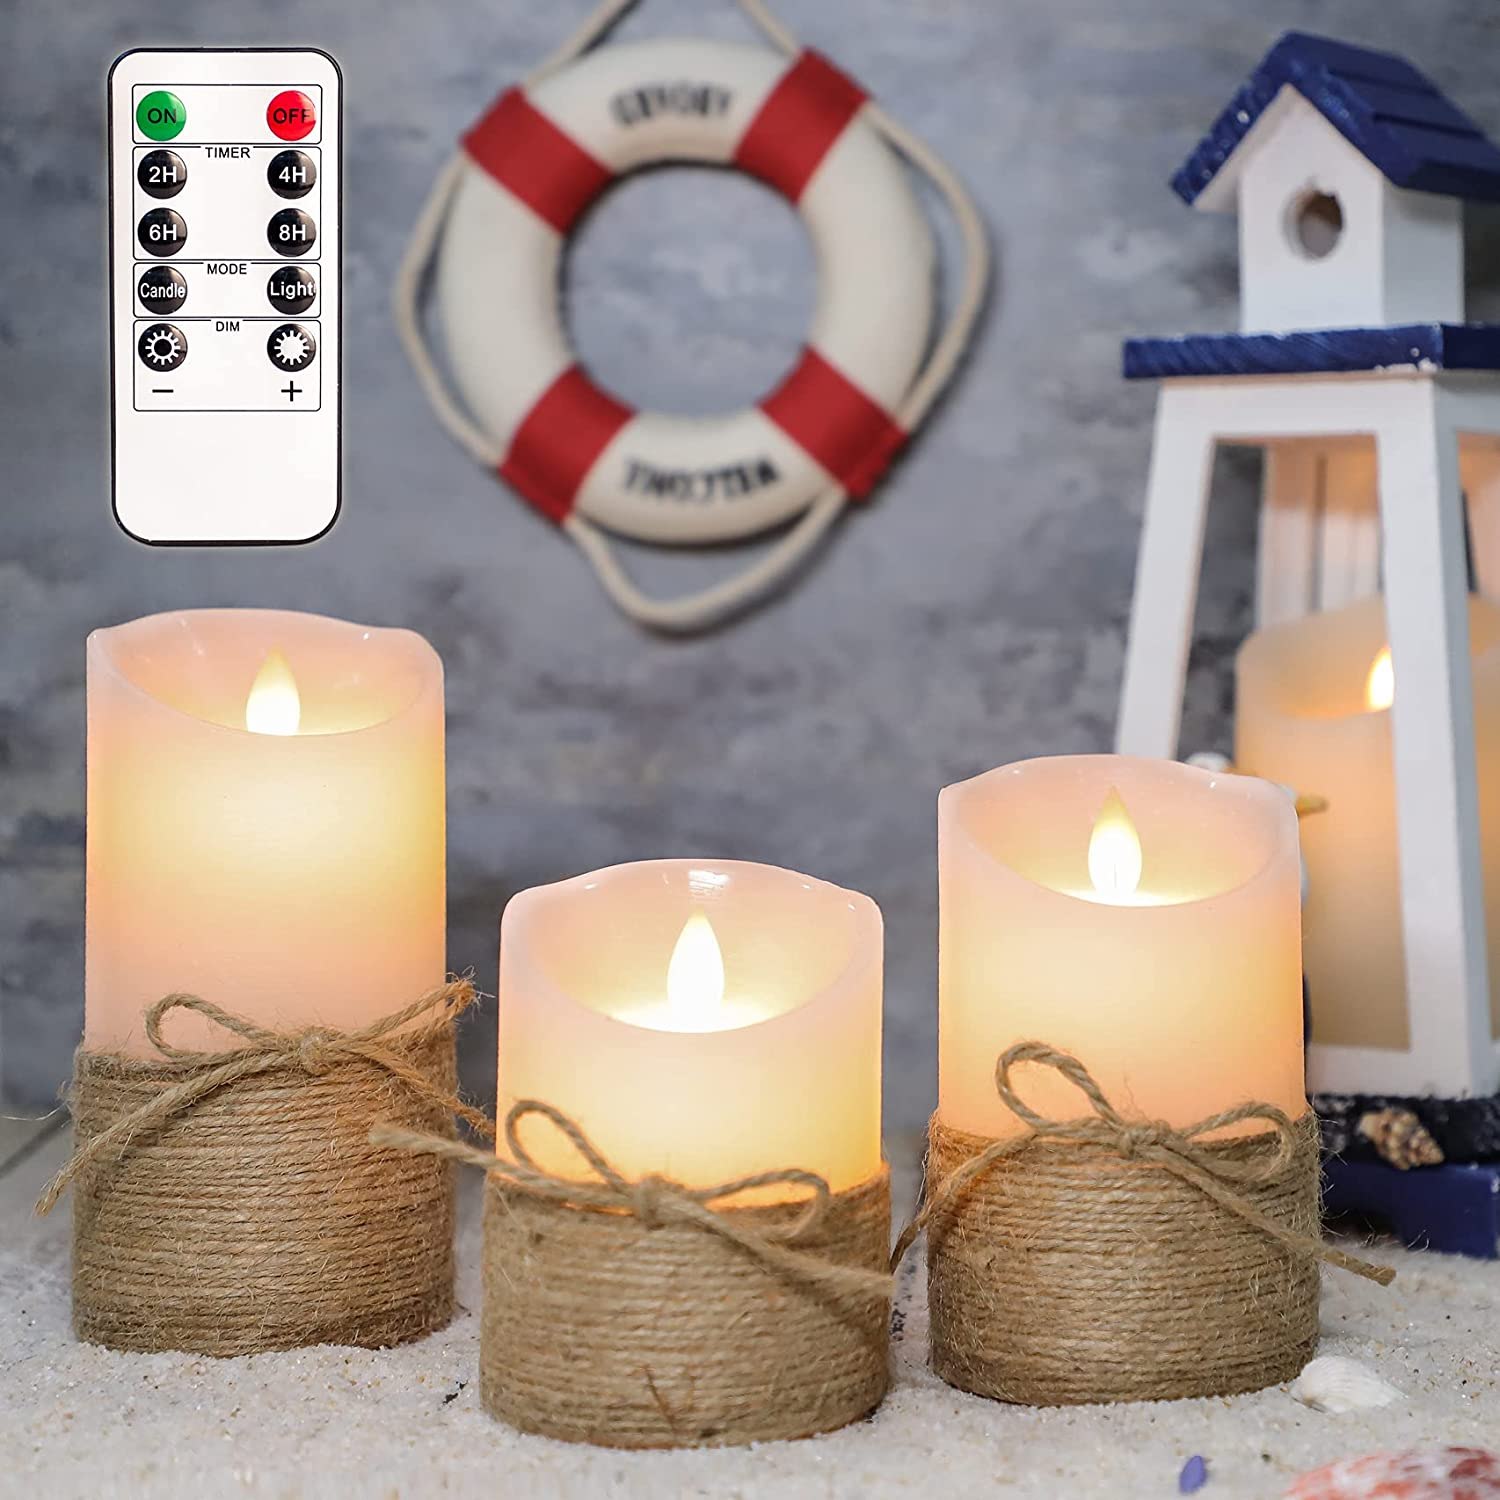 SILVERSTRO Flameless Candles with Remote, D3.11